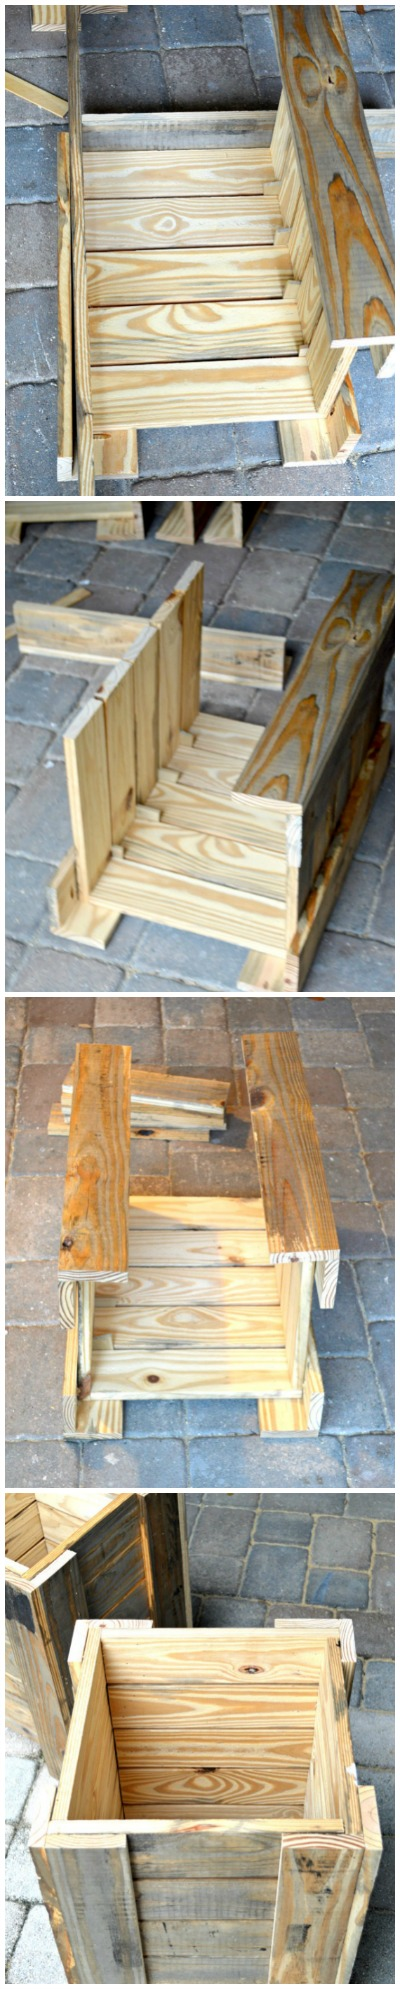 Step-to-build-wood-planter-box-H2OBungalow